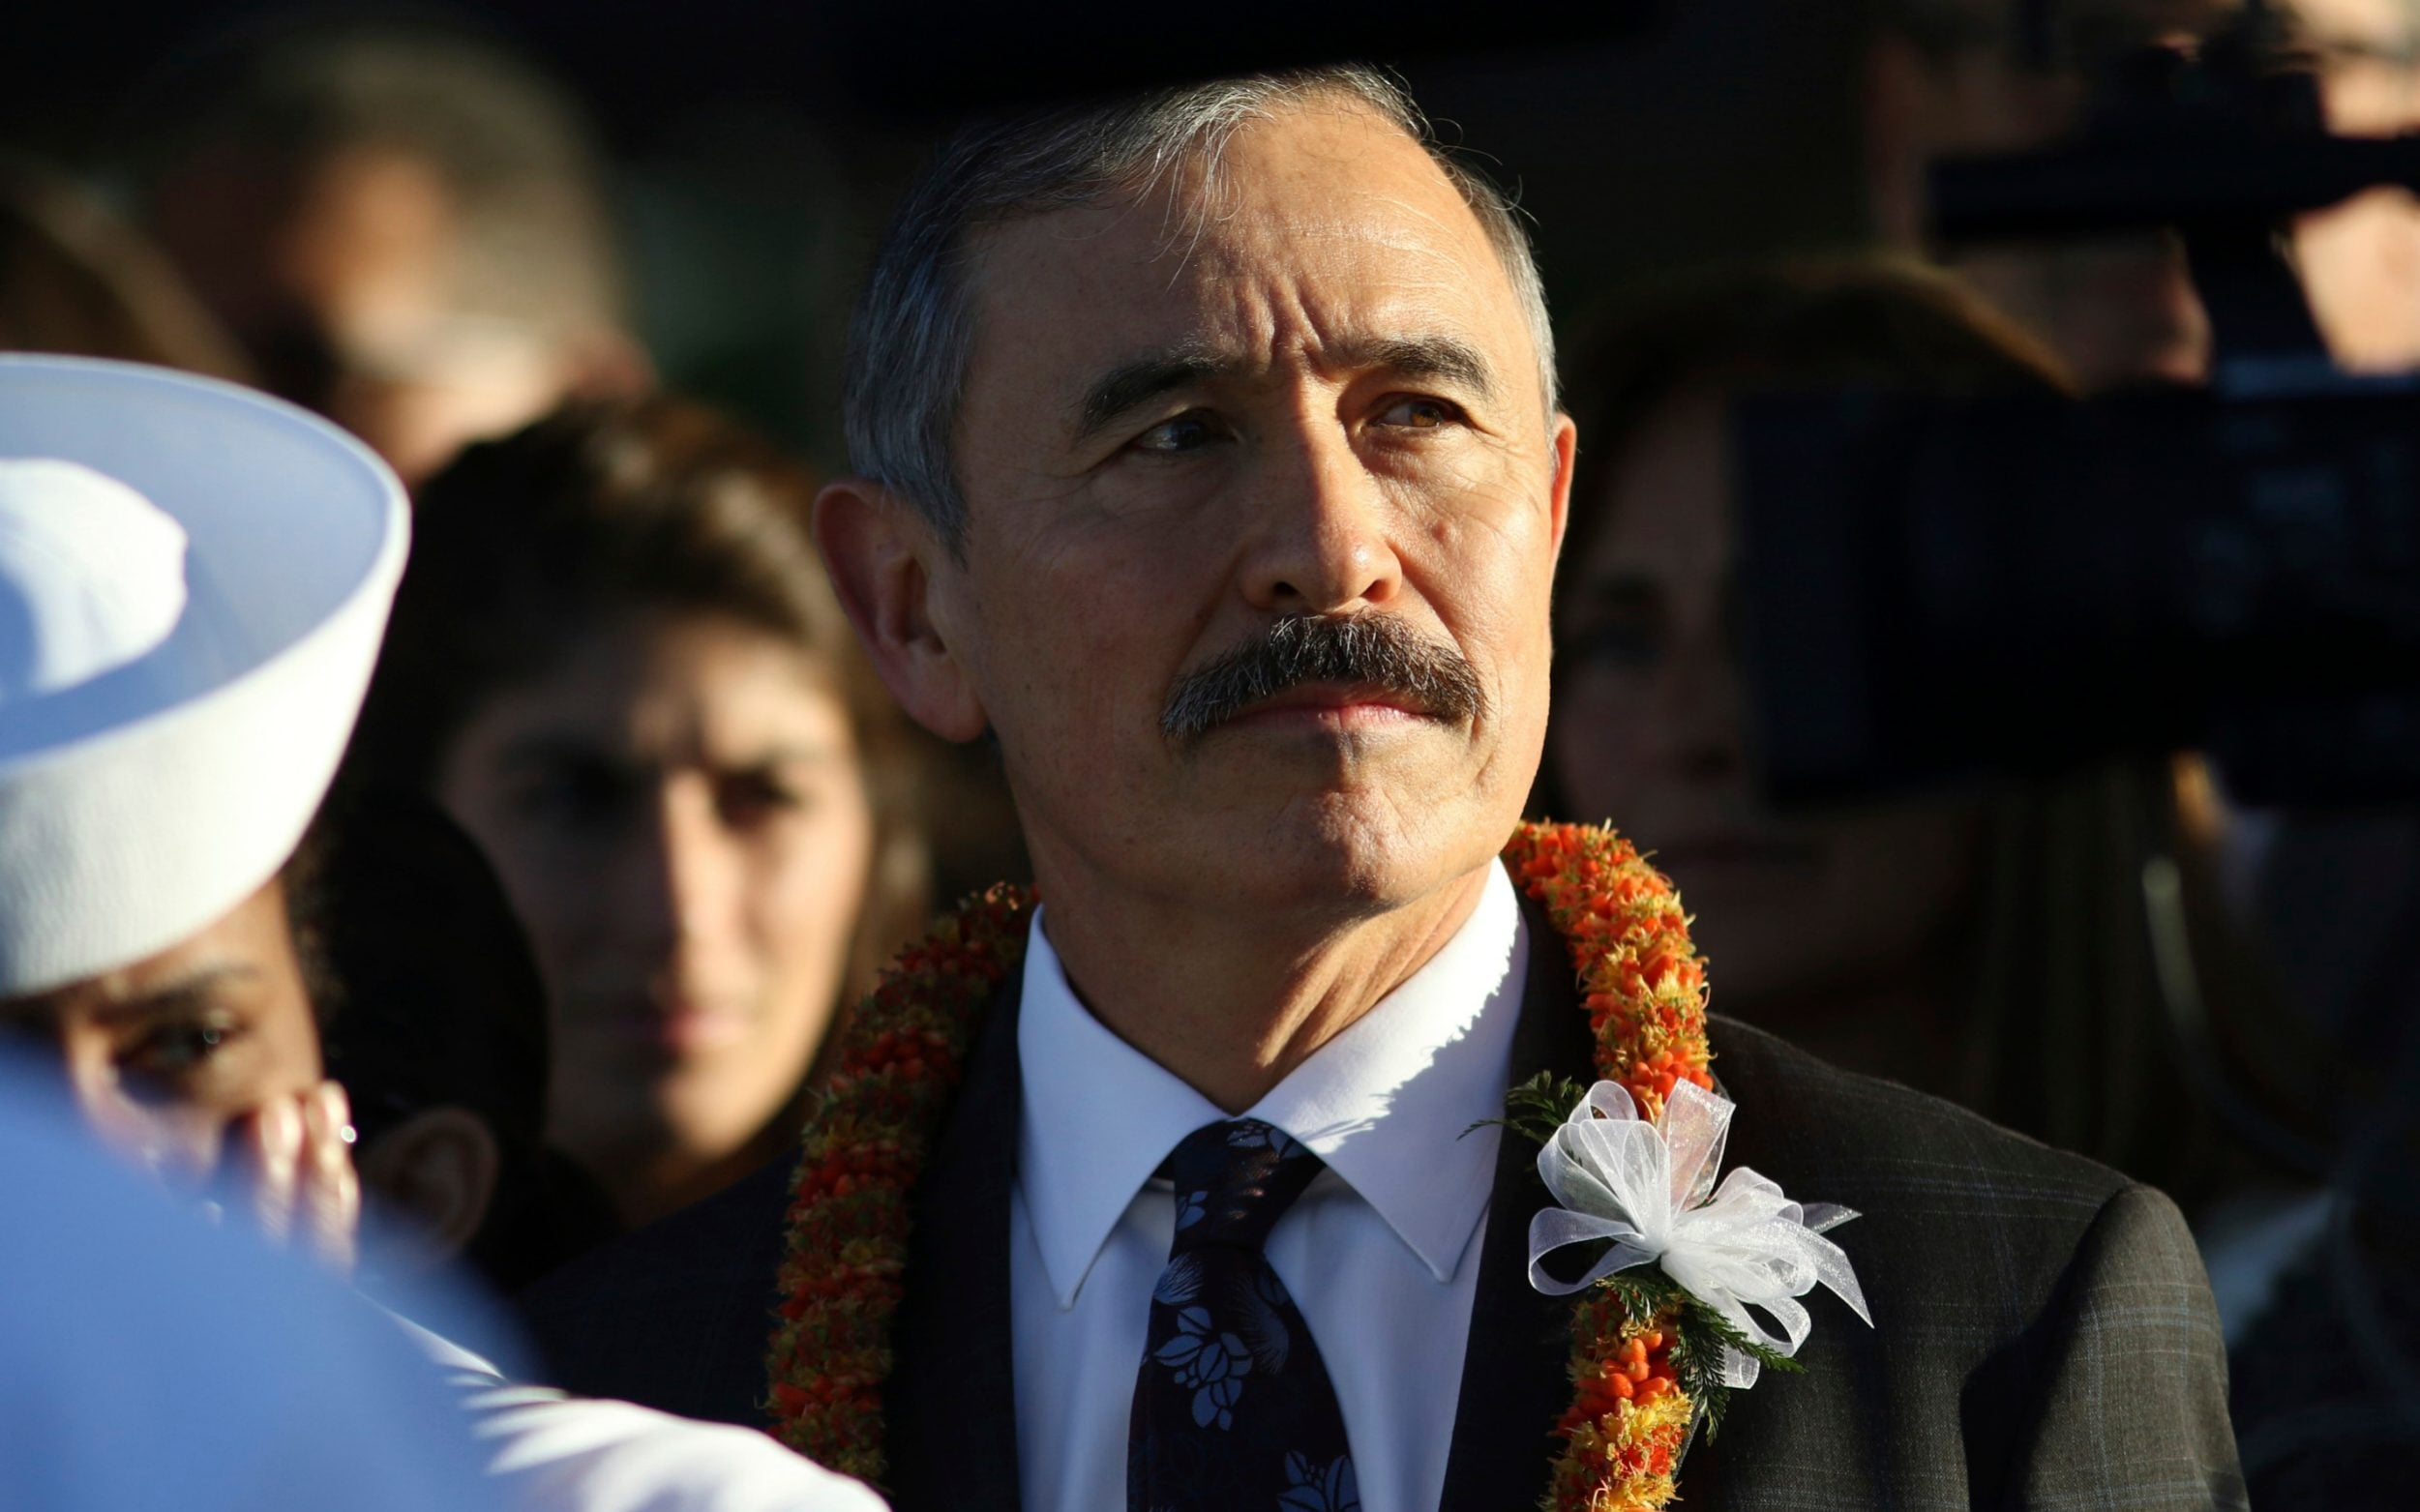 Image result for US diplomat's moustache leaves South Koreans bristling with anger